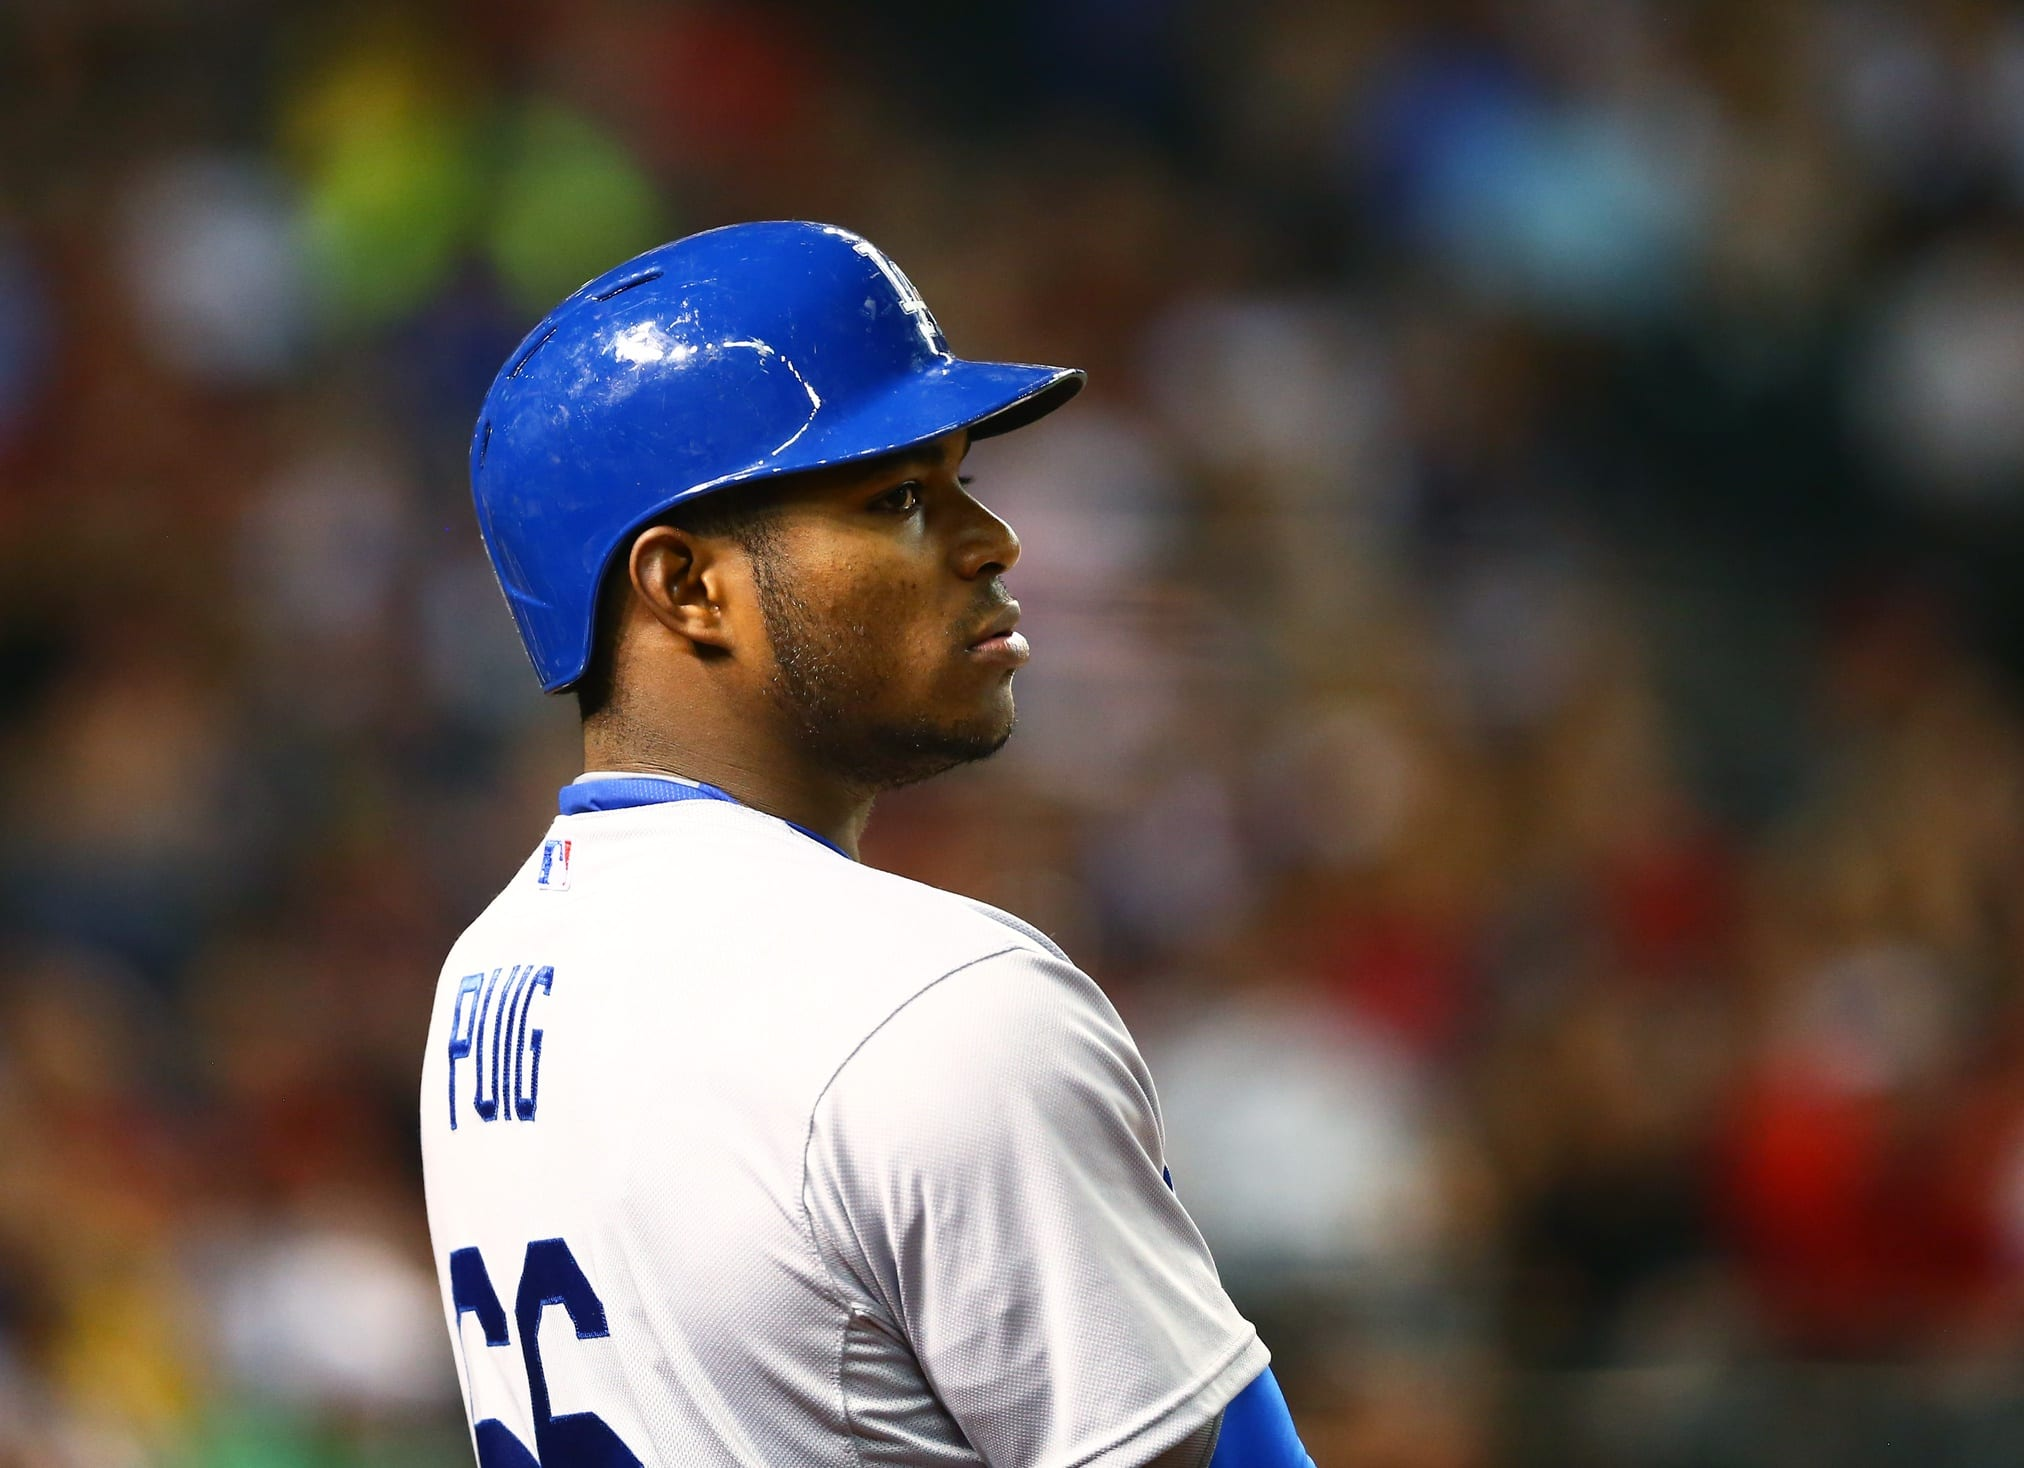 Dodgers Rumors: Yasiel Puig To Be Investigated By Mlb For Role In Altercation